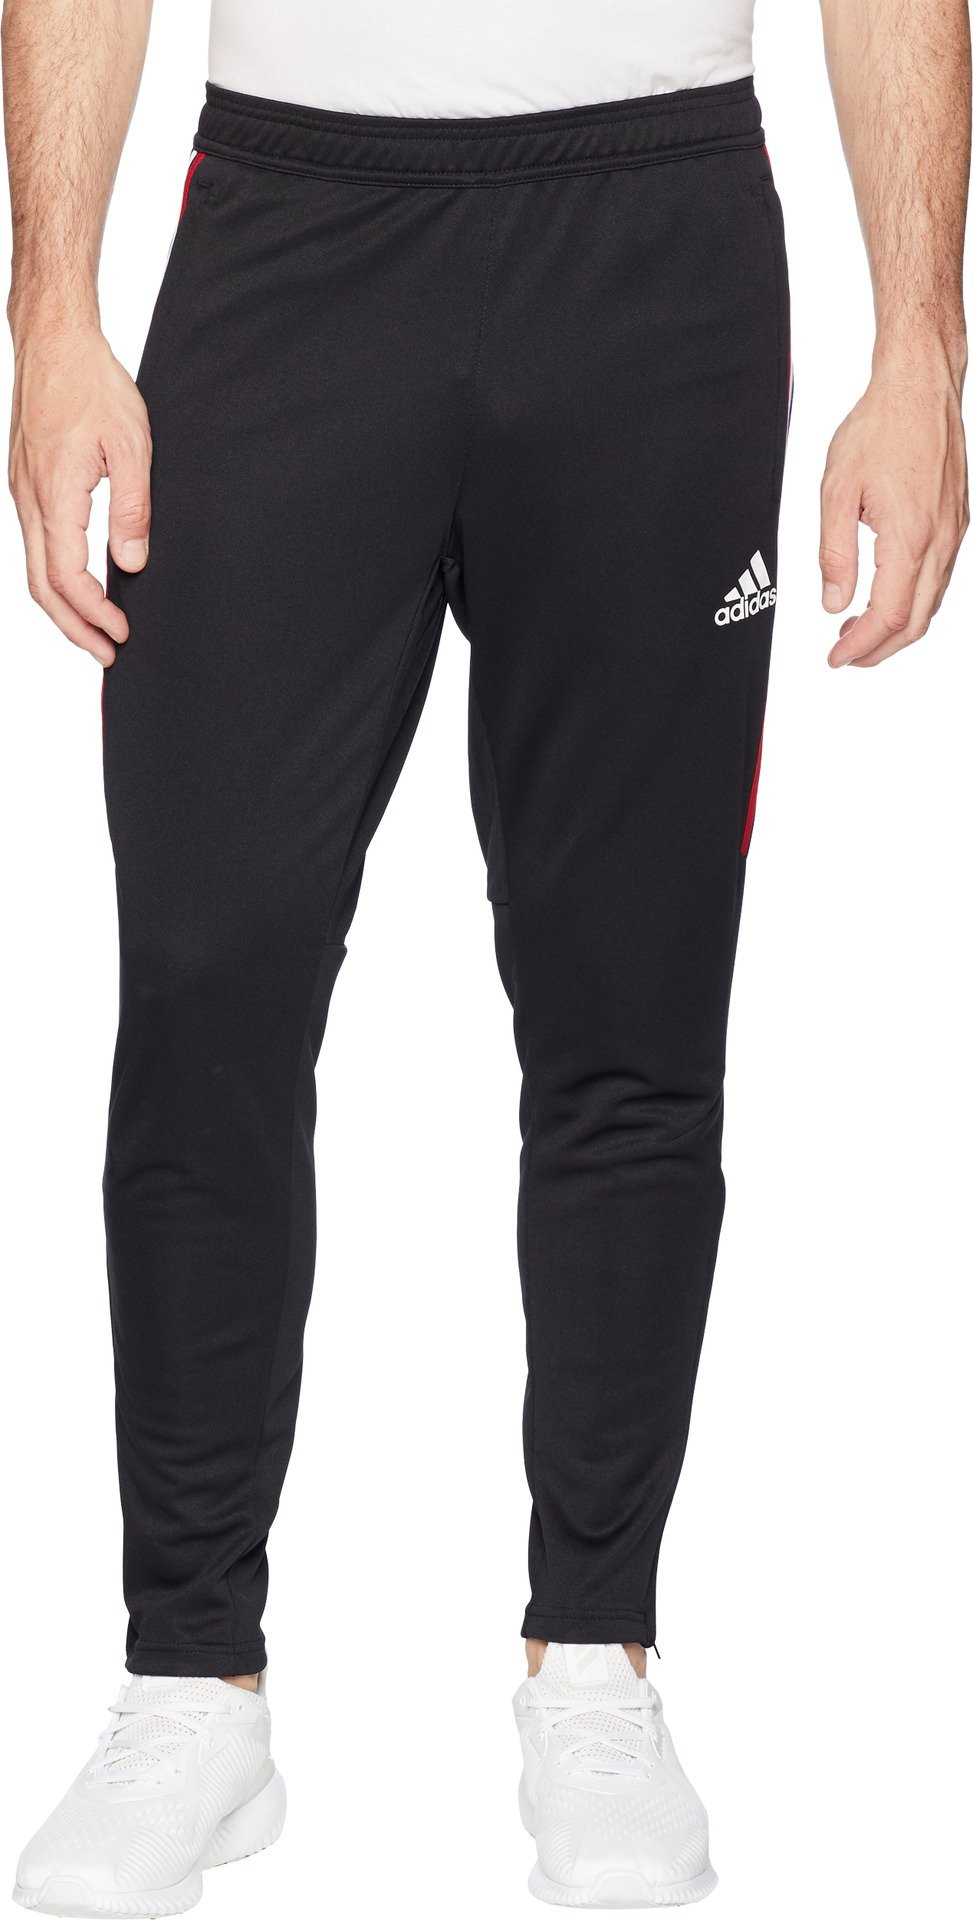 28aed0720735 Galleon - Adidas Men s Soccer Tiro 17 Training Pants